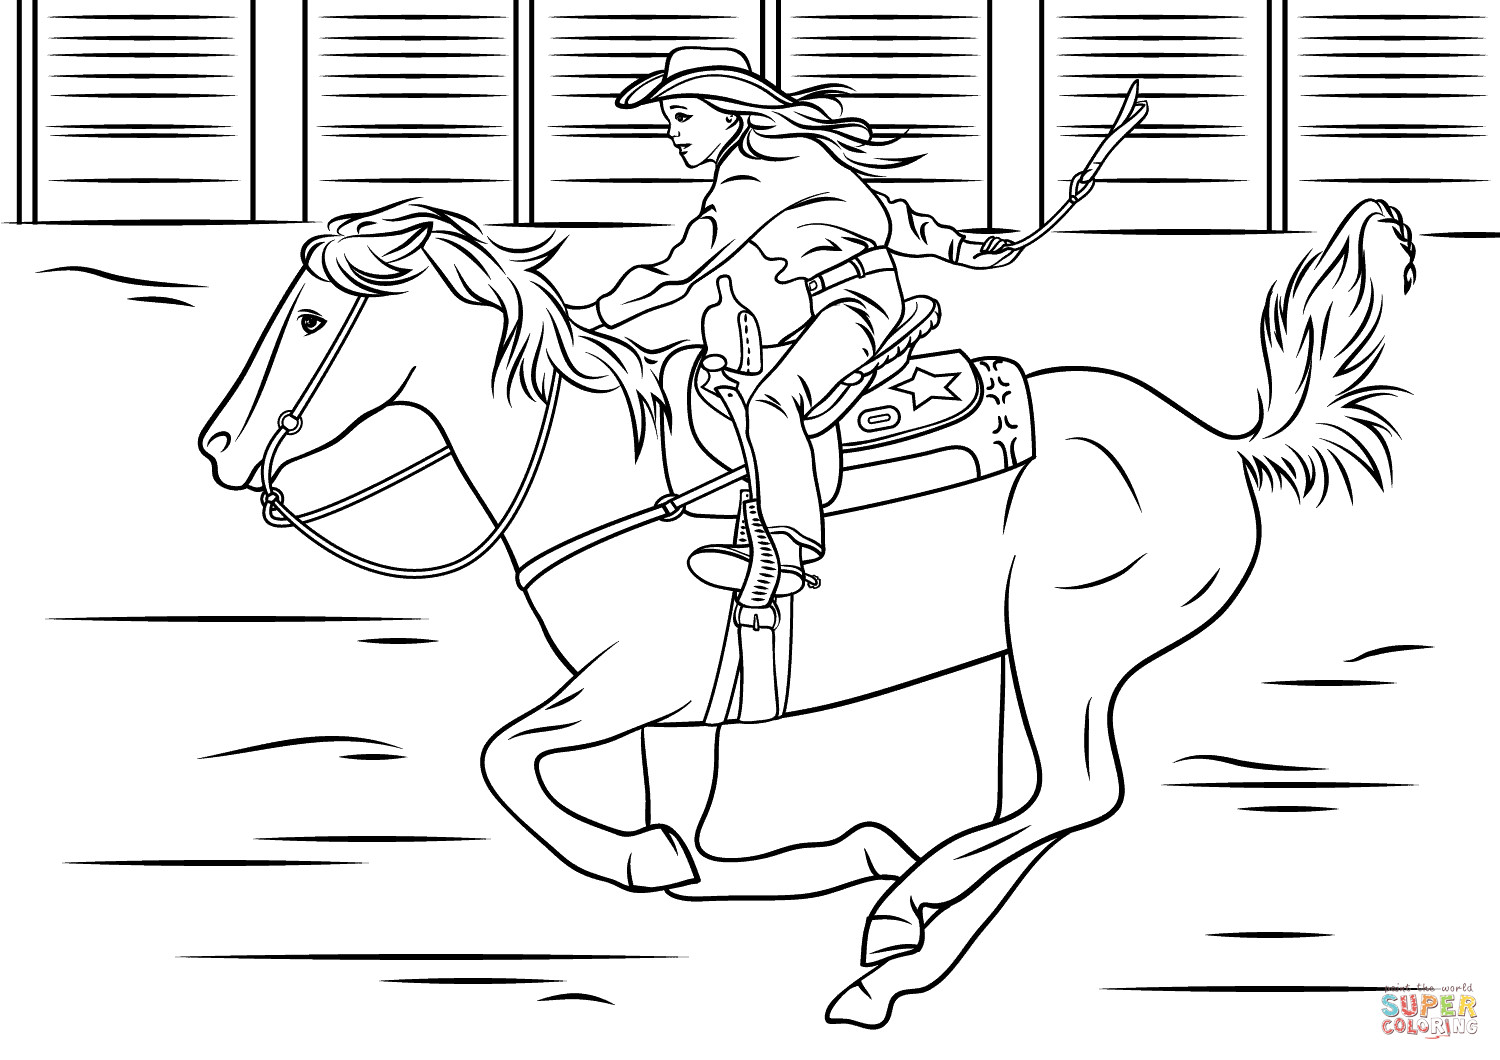 Super Easy Viking Foot Ball Super Bull Coloring Pages For Boys  horse and cowboy coloring pages printable